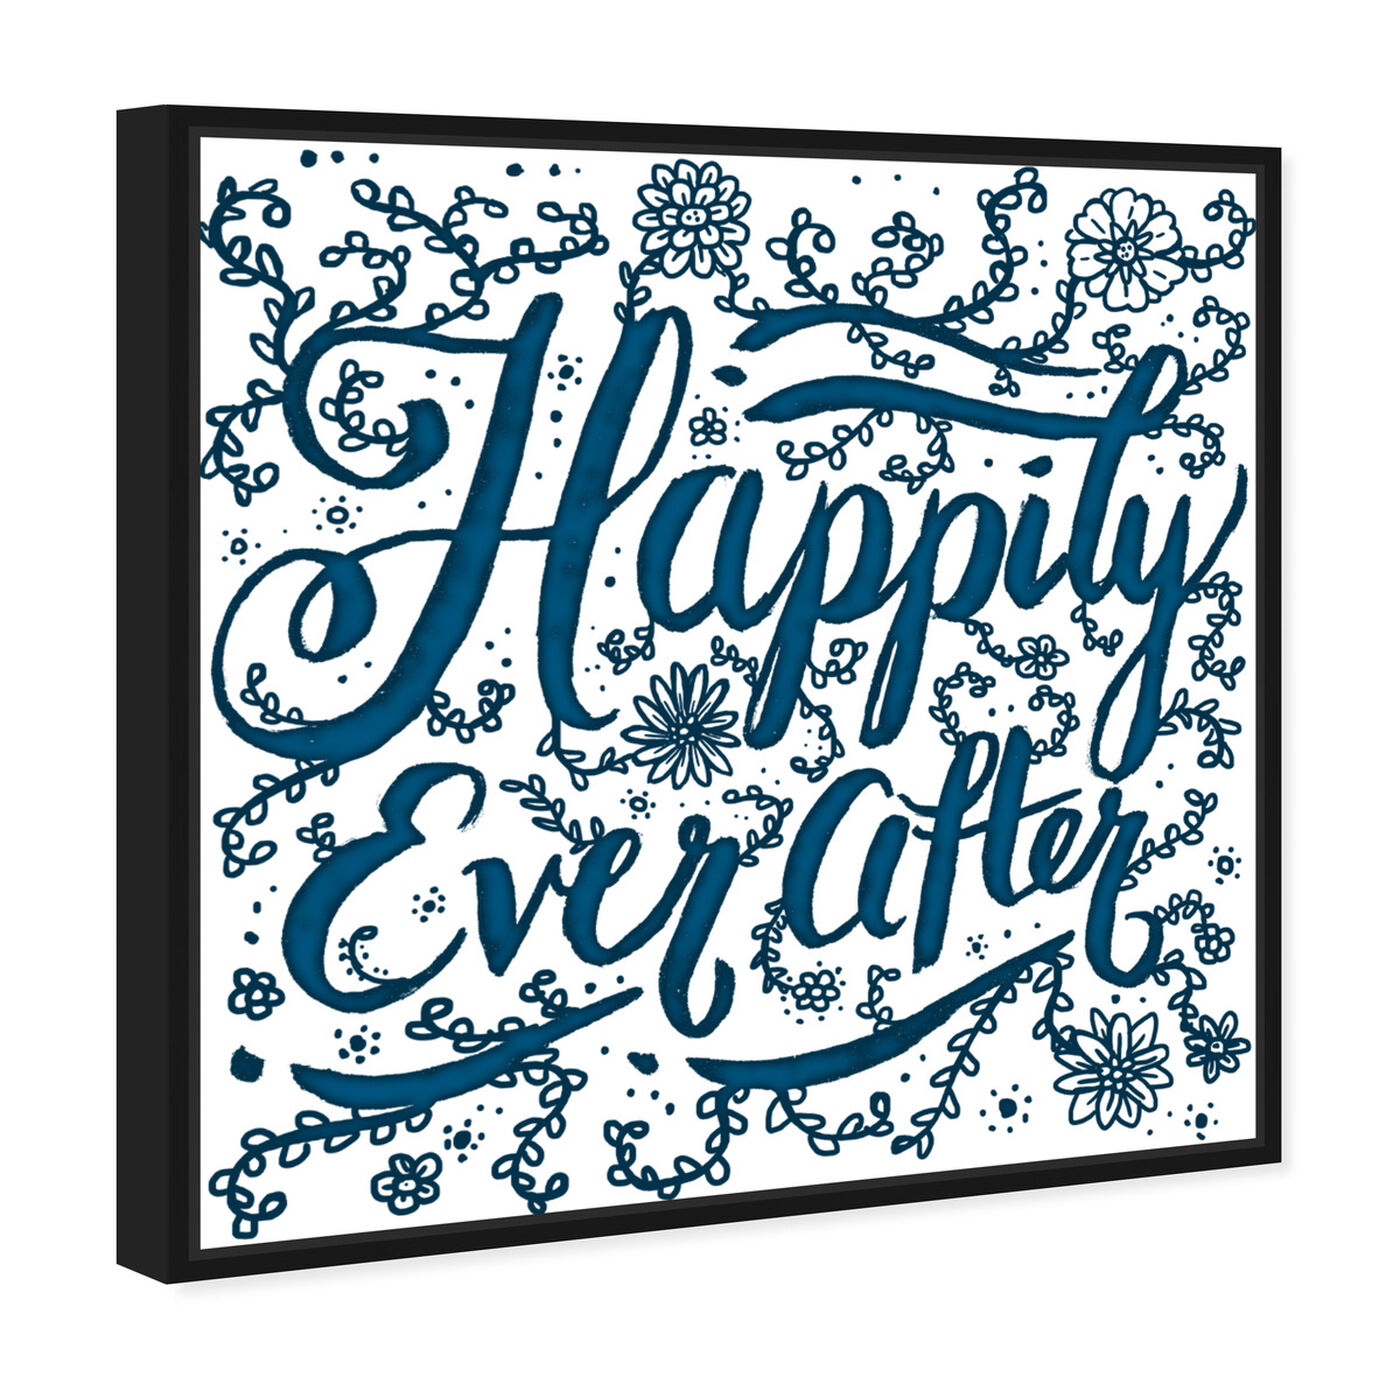 Angled view of Happily Ever After featuring typography and quotes and family quotes and sayings art.